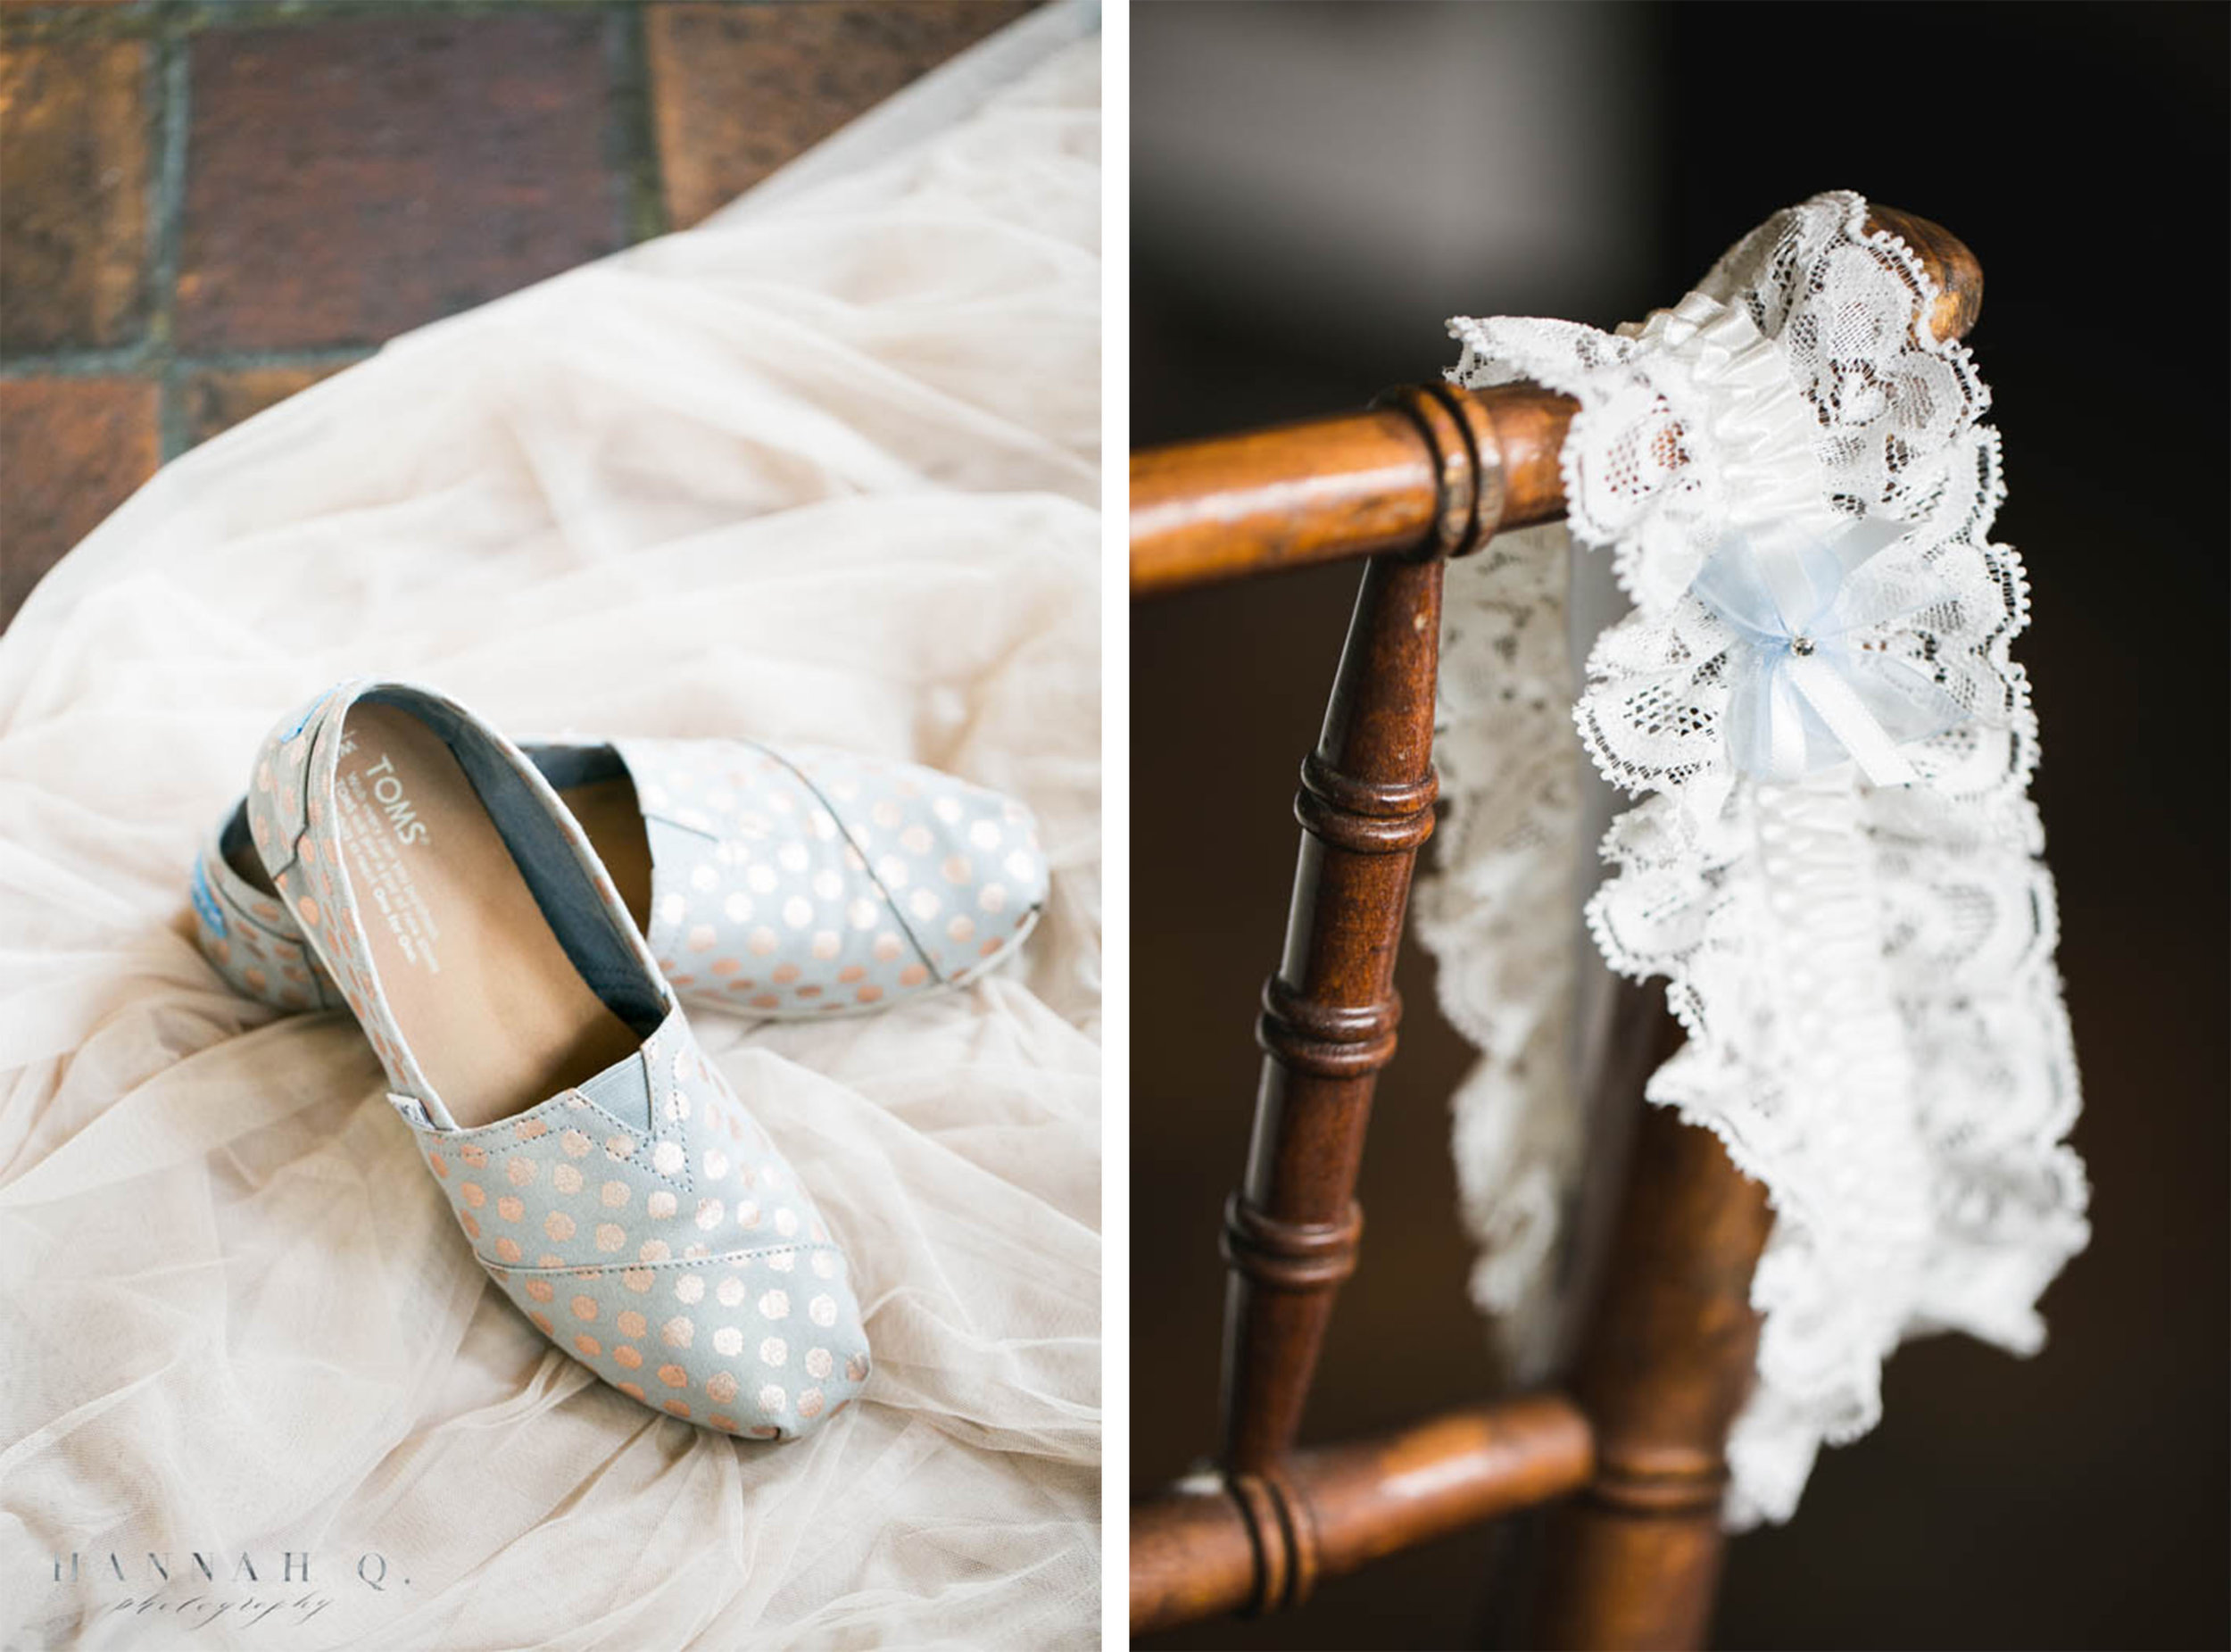 Loved so much that she was wearing these comfortable Tom's. I've seen more and more brides choose comfort over looks.